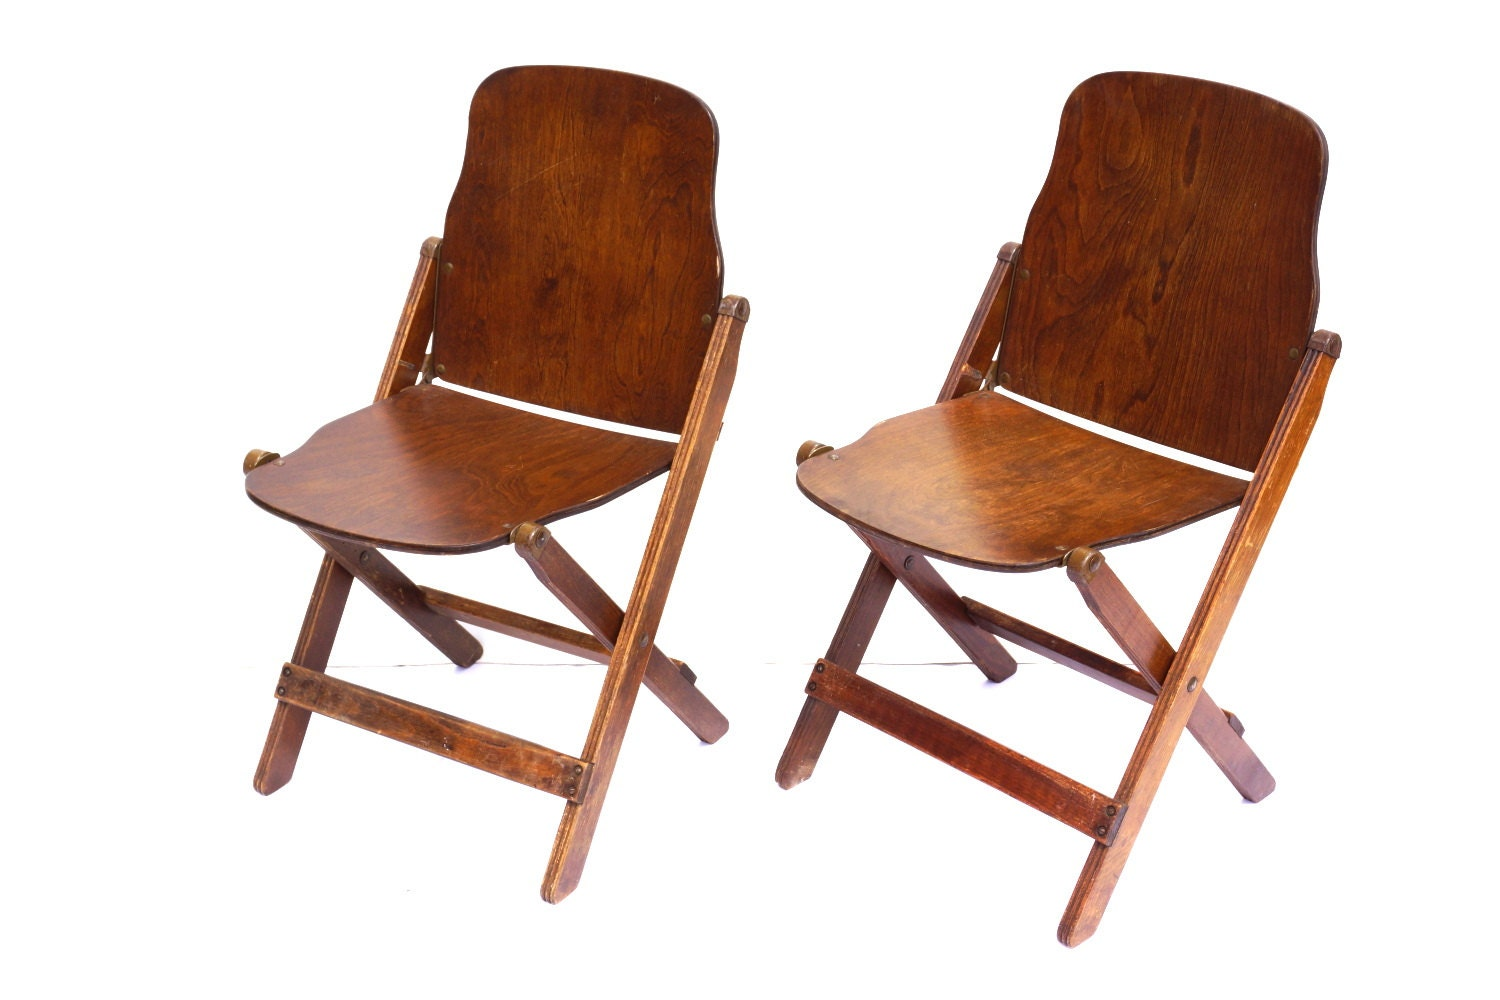 Antique Wooden Chairs ~ Vintage antique wood folding chairs with brass hardware set